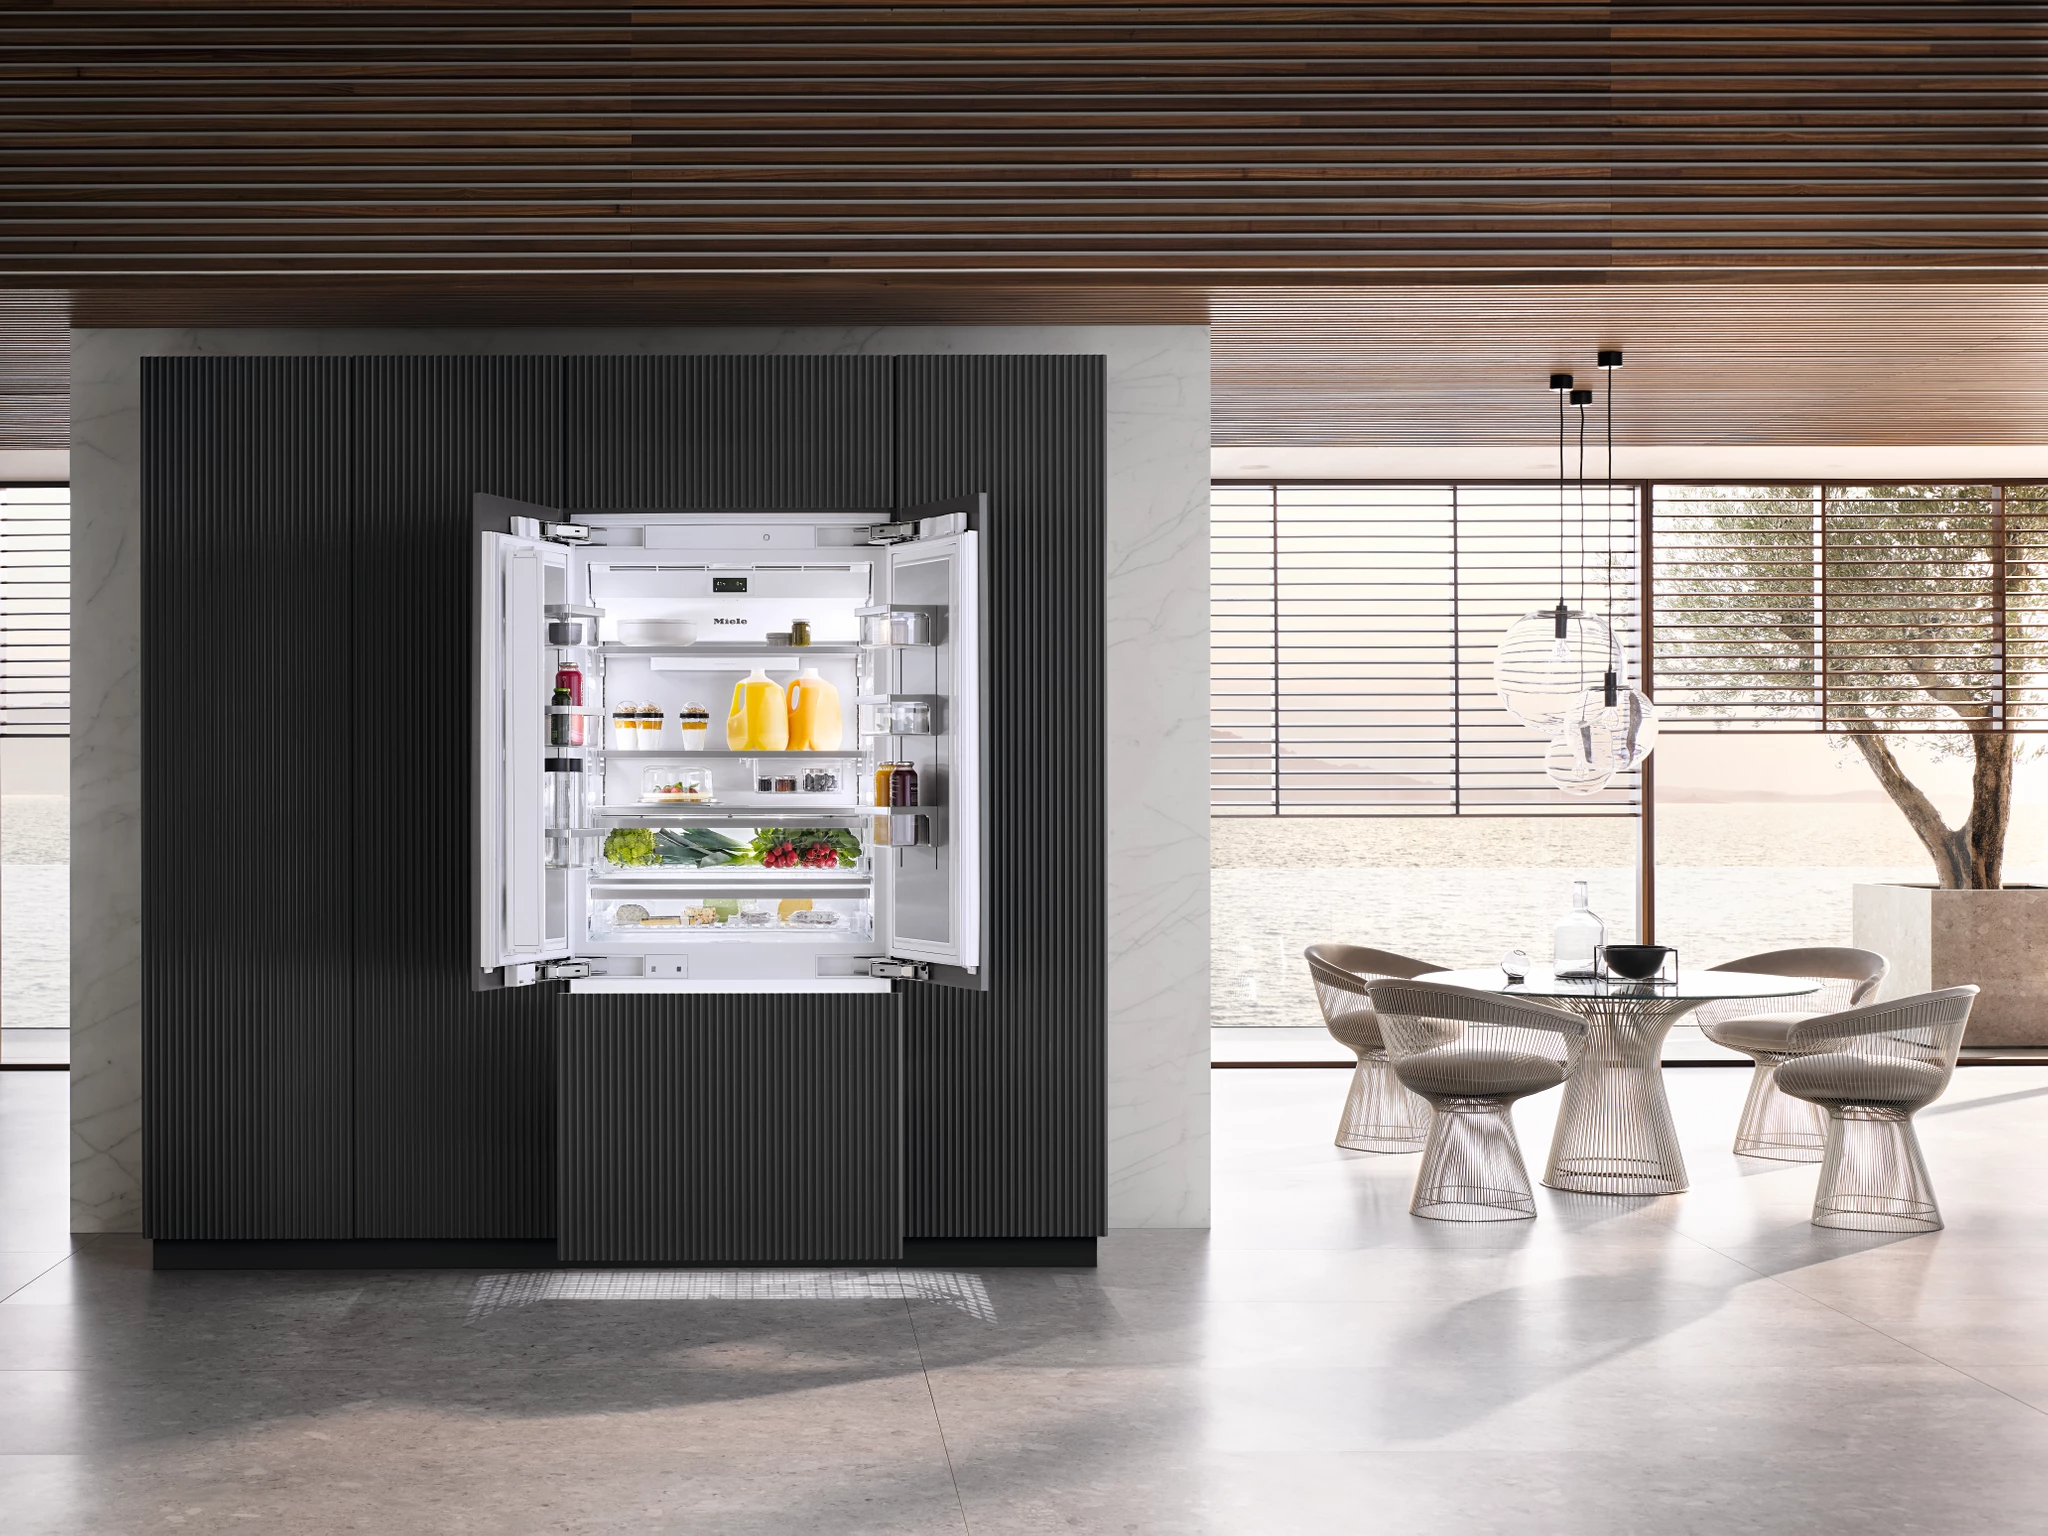 Fisher & Paykel - Get a 5 Year Warranty on Qualifying Models